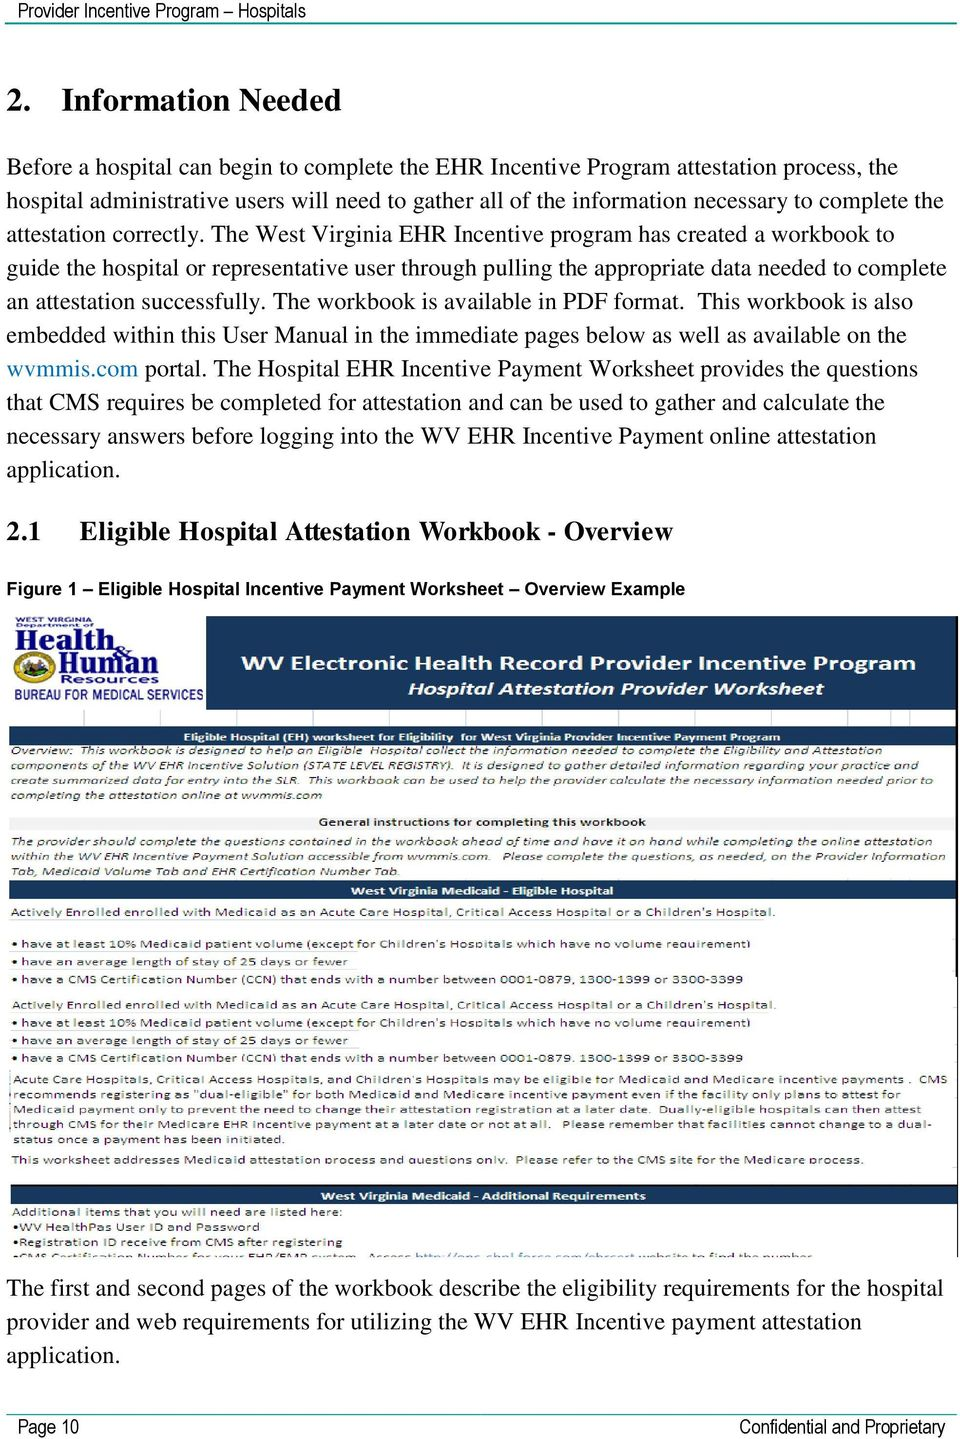 The West Virginia EHR Incentive program has created a workbook to guide the hospital or representative user through pulling the appropriate data needed to complete an attestation successfully.